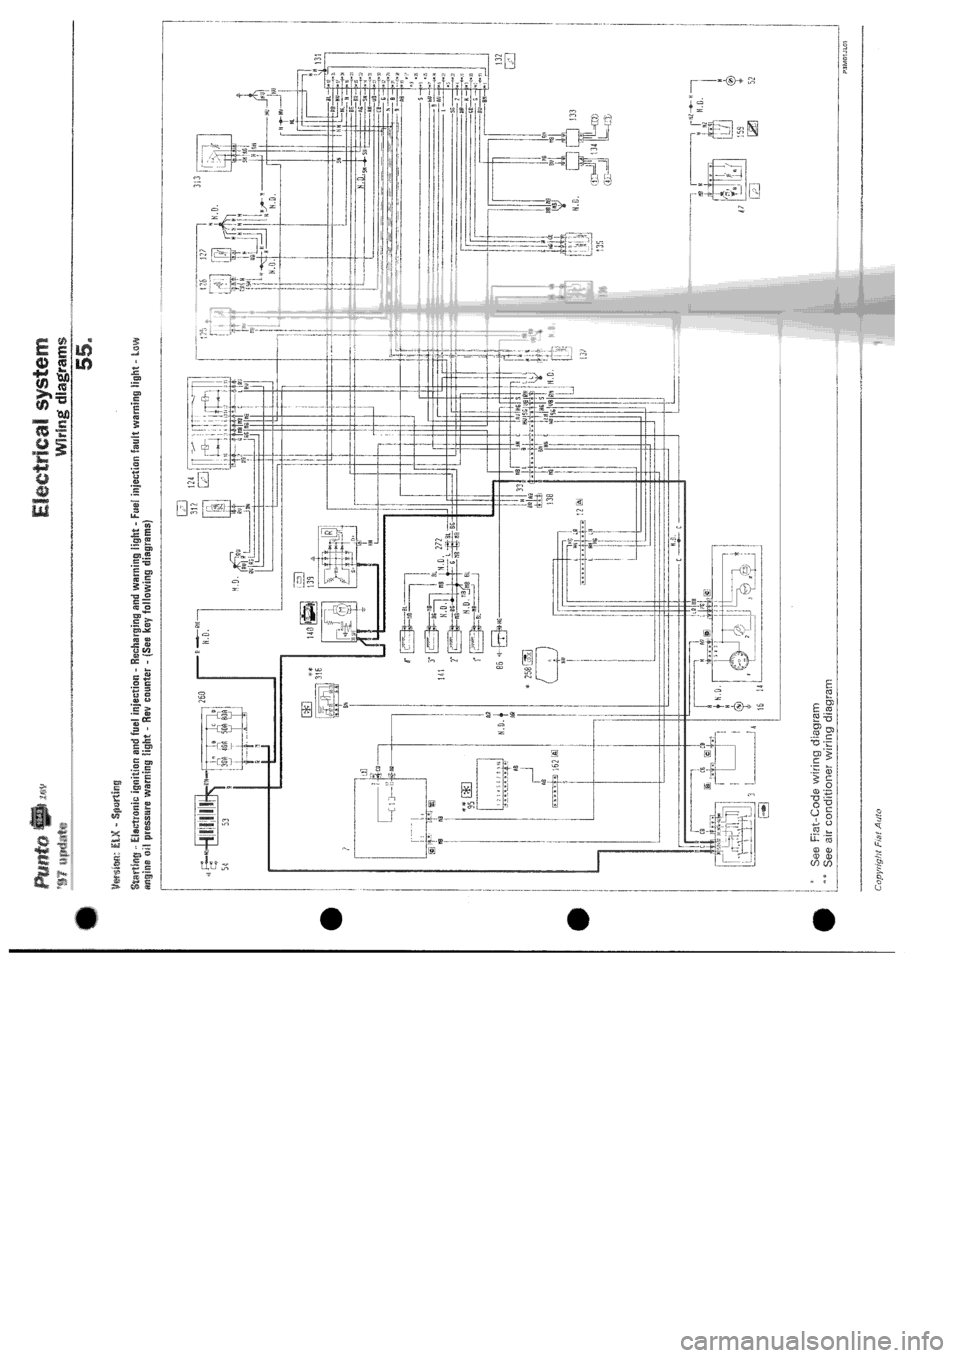 medium resolution of wiring diagram for fiat ducato wiring library 1979 fiat spider wiring diagrams w960 4692 1 fiat doblo